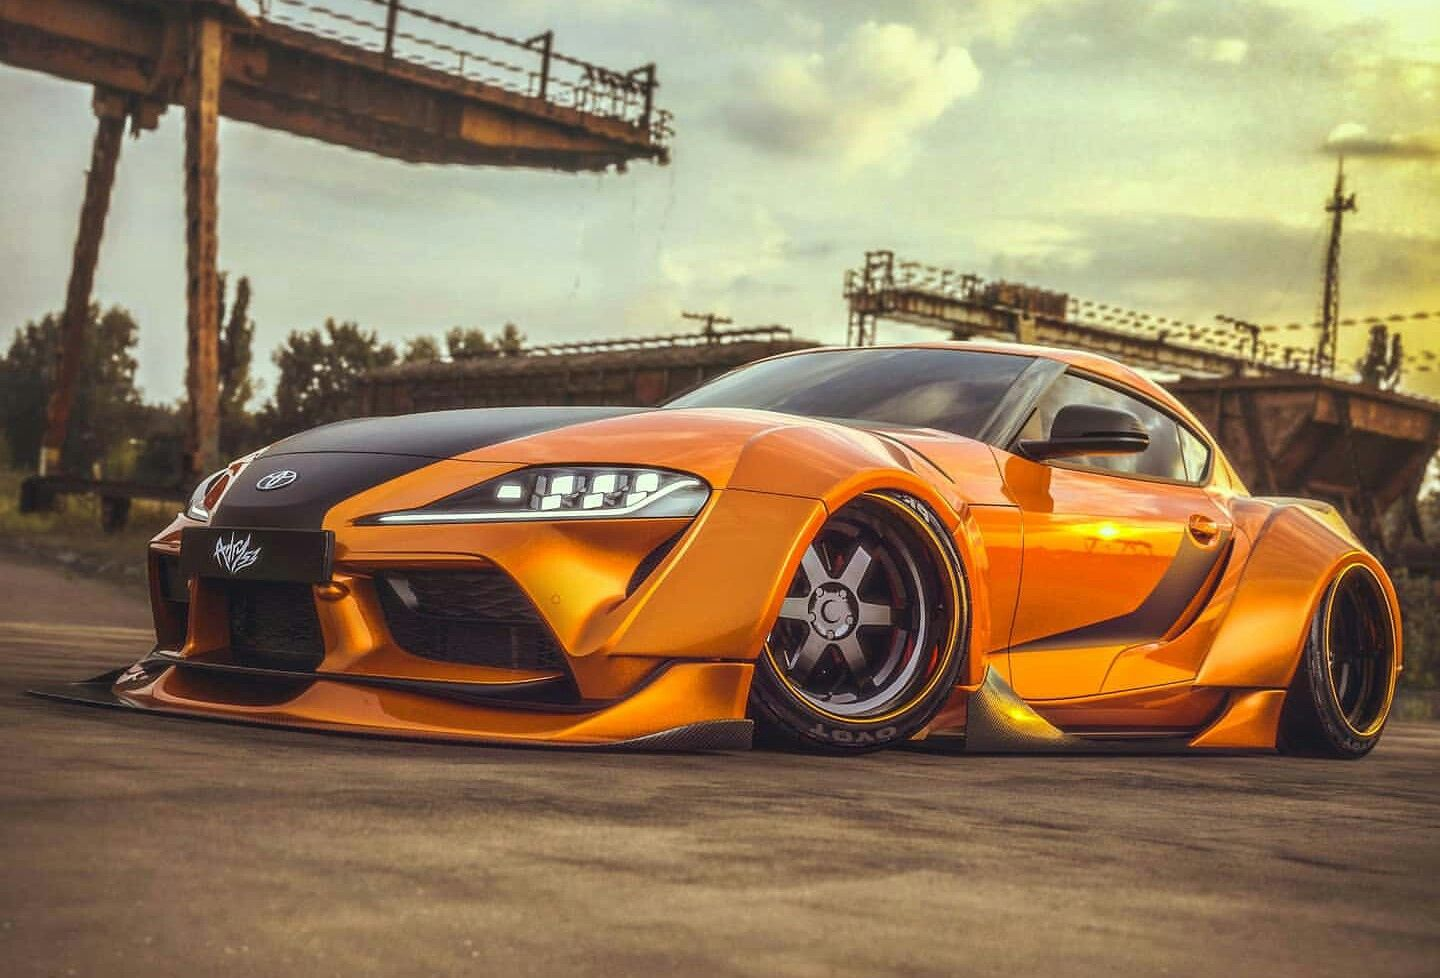 Pin By Mario Sotelo On Fast Furious In 2020 Sports Car Super Cars Car